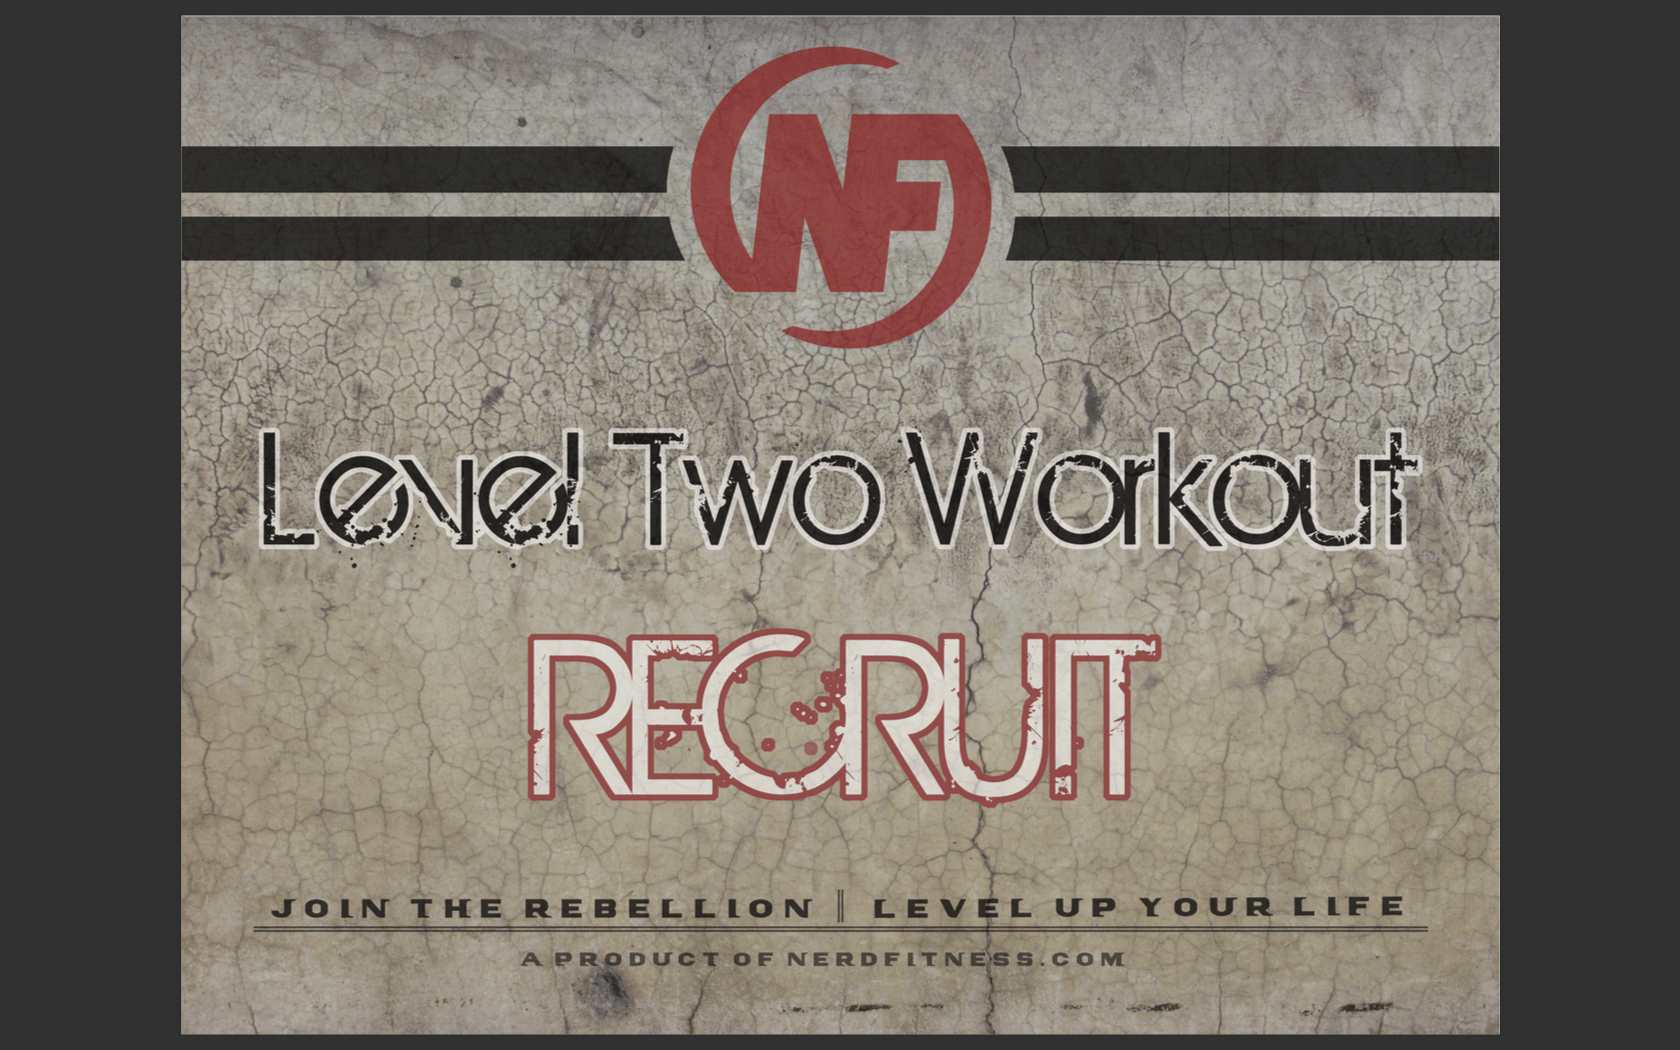 Download Level 2 workout Recruit